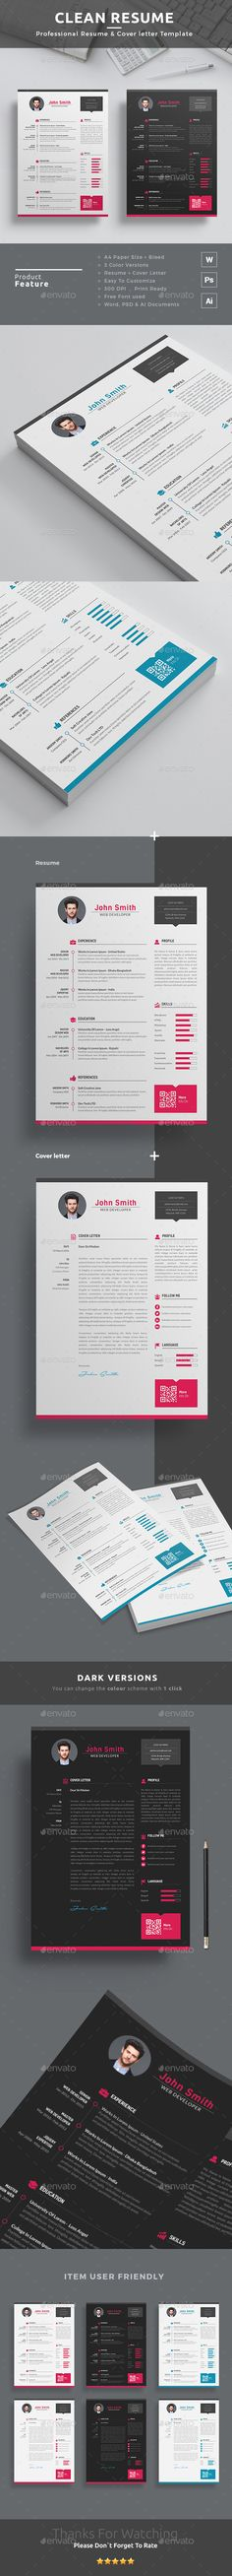 Free Resume Download%0A Awesome Creative and Elegant Resume Template Free PSD  Download Creative  and Elegant Resume Template Free PSD  This free resume template is perfect u